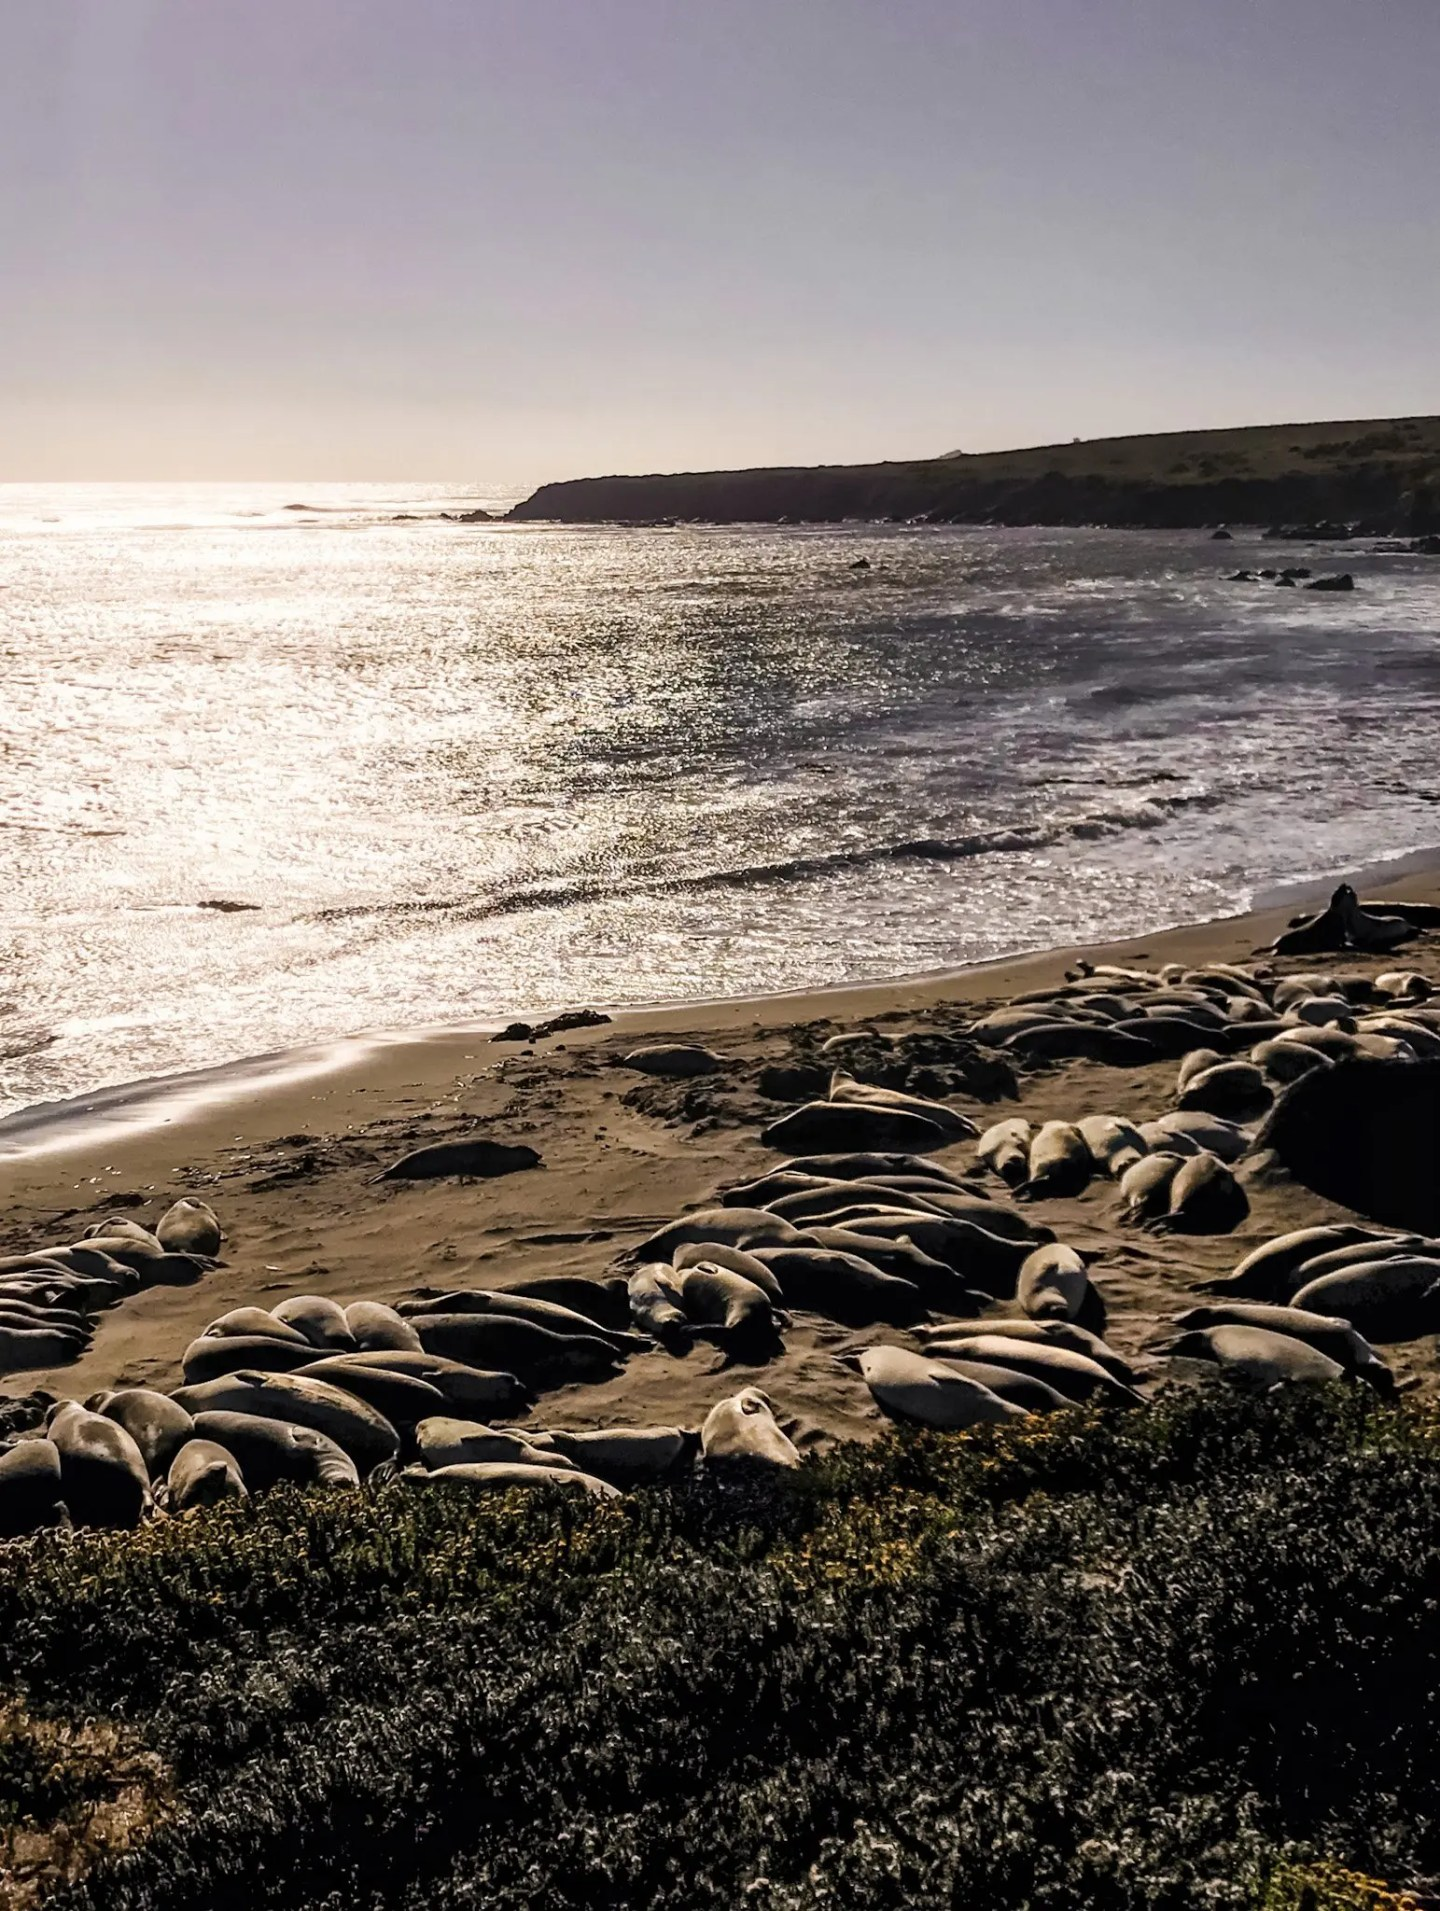 Elephant seals in San Simeone, which we passed as we were heading south from Big Sur towards Pismo Beach.